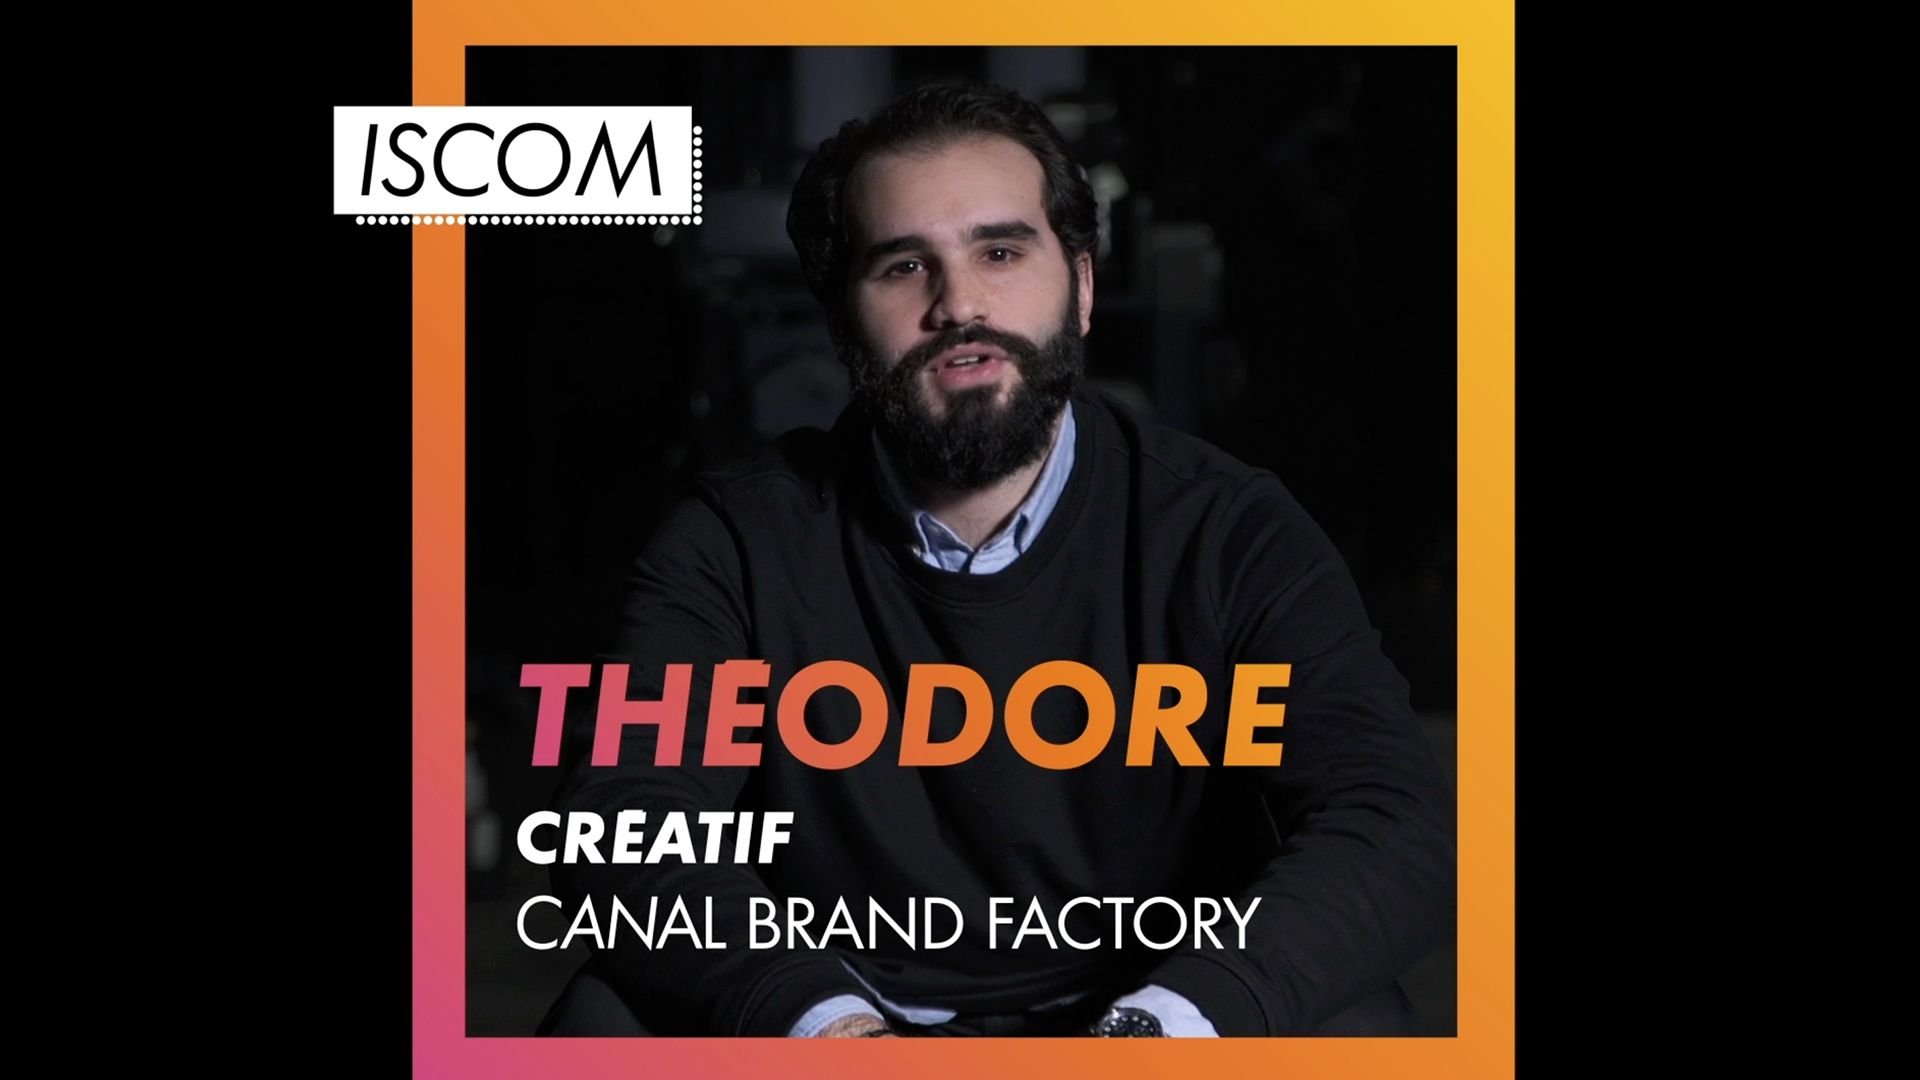 Paroles de stagiaires CANAL Brand Factory